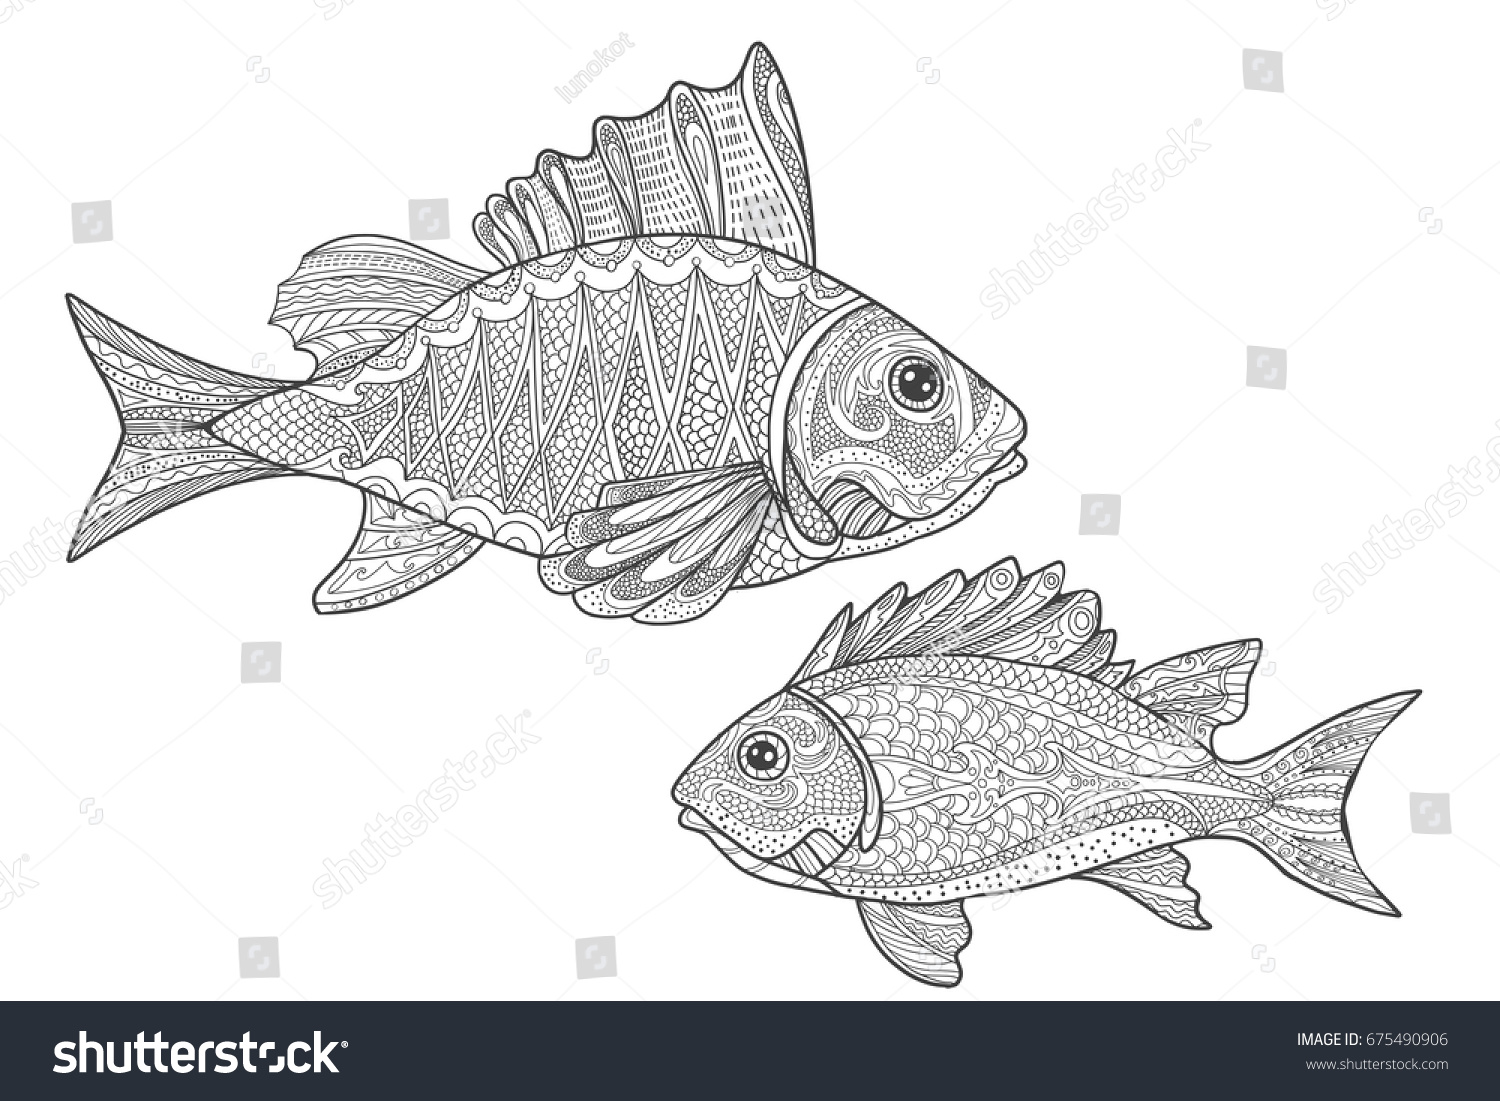 Sealife Coloring Page Fishes Adult Coloring Stock Vector HD (Royalty ...